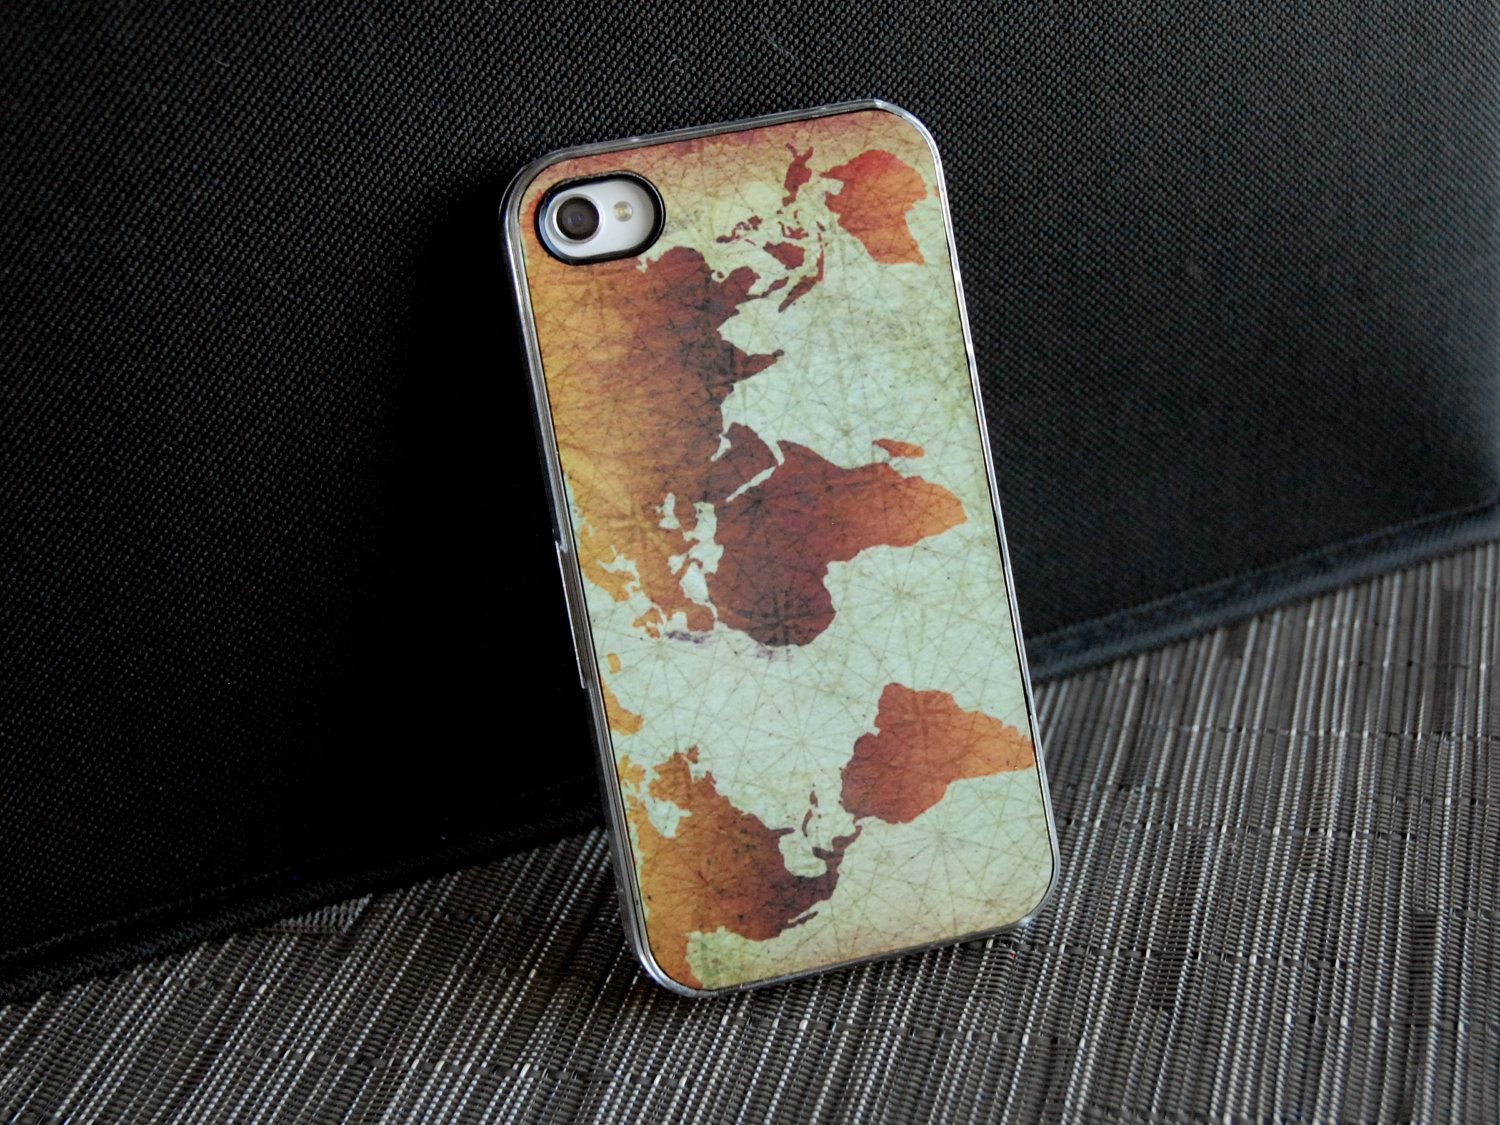 Classic world map custom 4 or 4s iphone case unique iphone cases classic world map custom 4 or 4s iphone case unique iphone cases gift globe cyber monday gifts for him stocking stuffers 2000 via etsy gumiabroncs Images